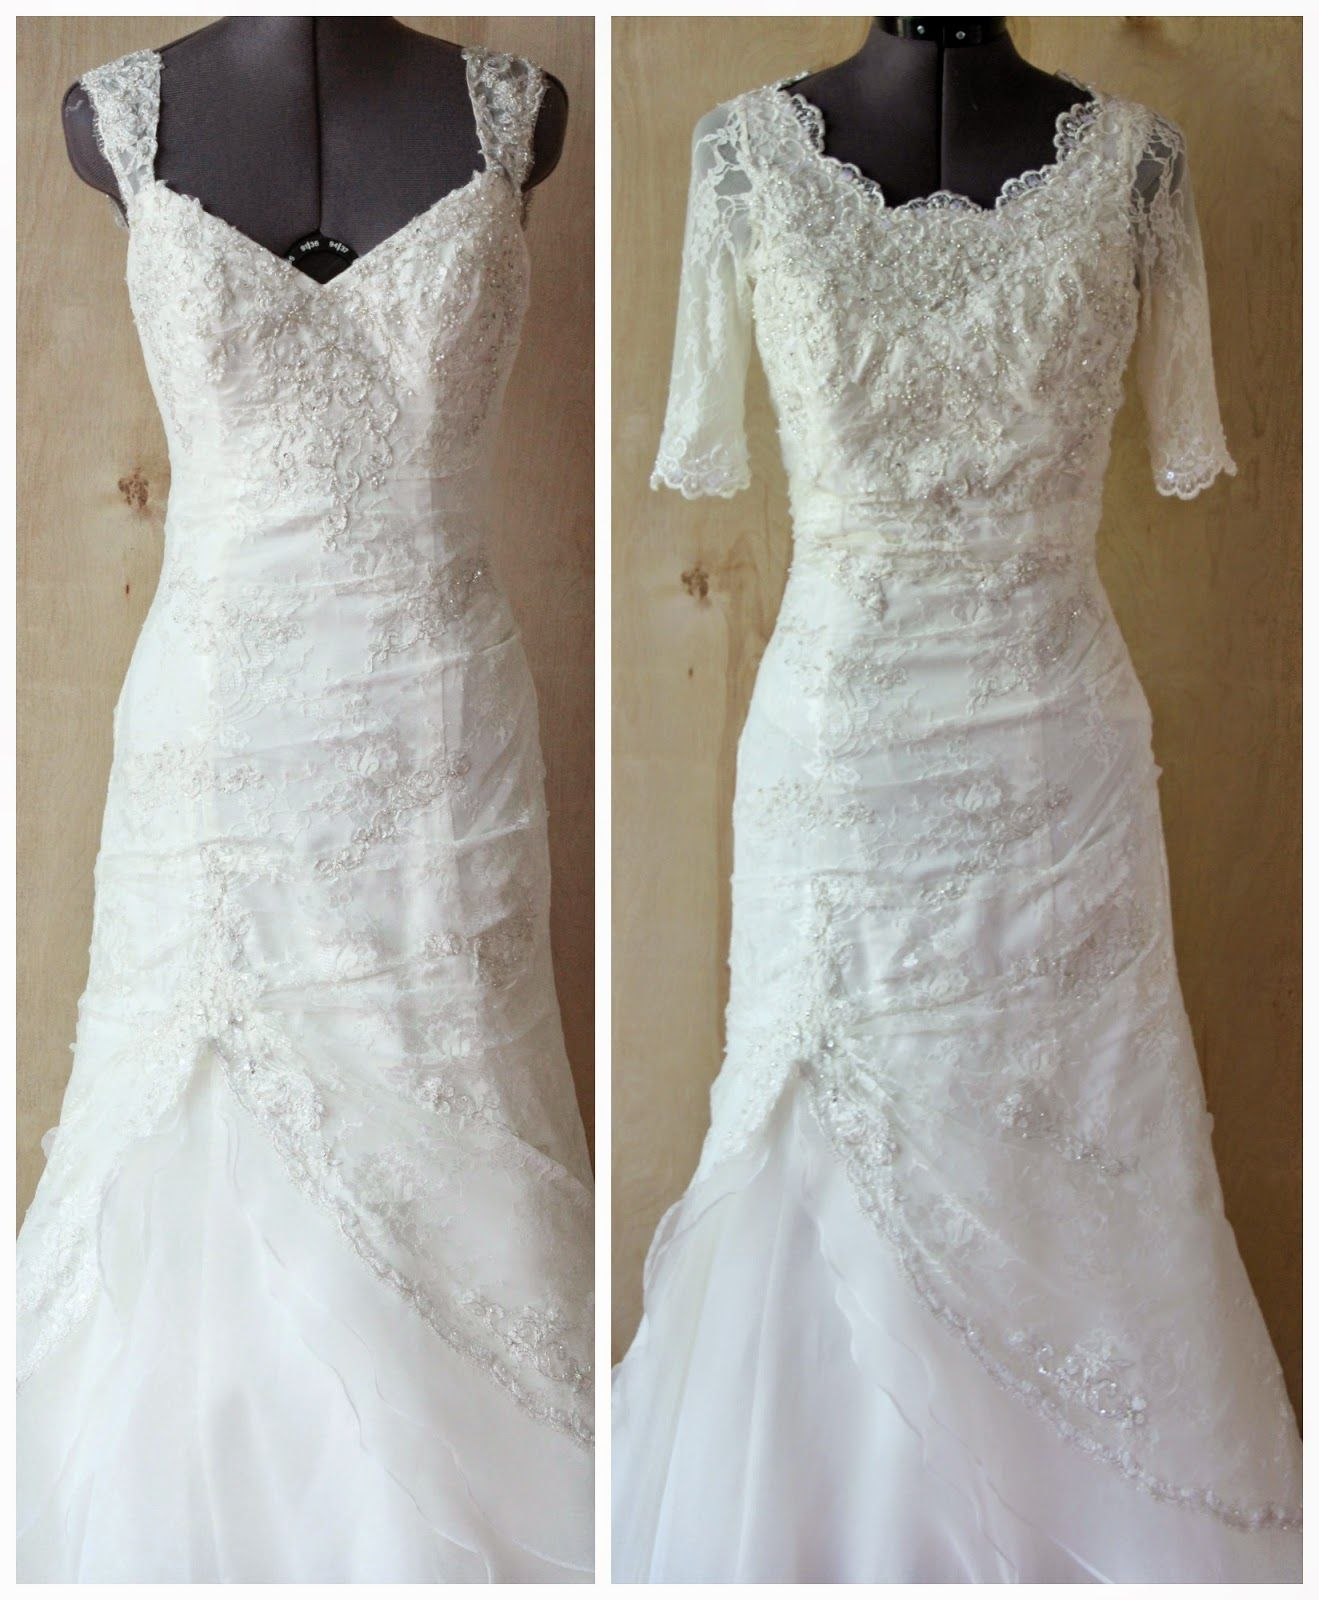 Gowns For A Wedding: Really Clever Post On How To Restyle An Immodest Dress